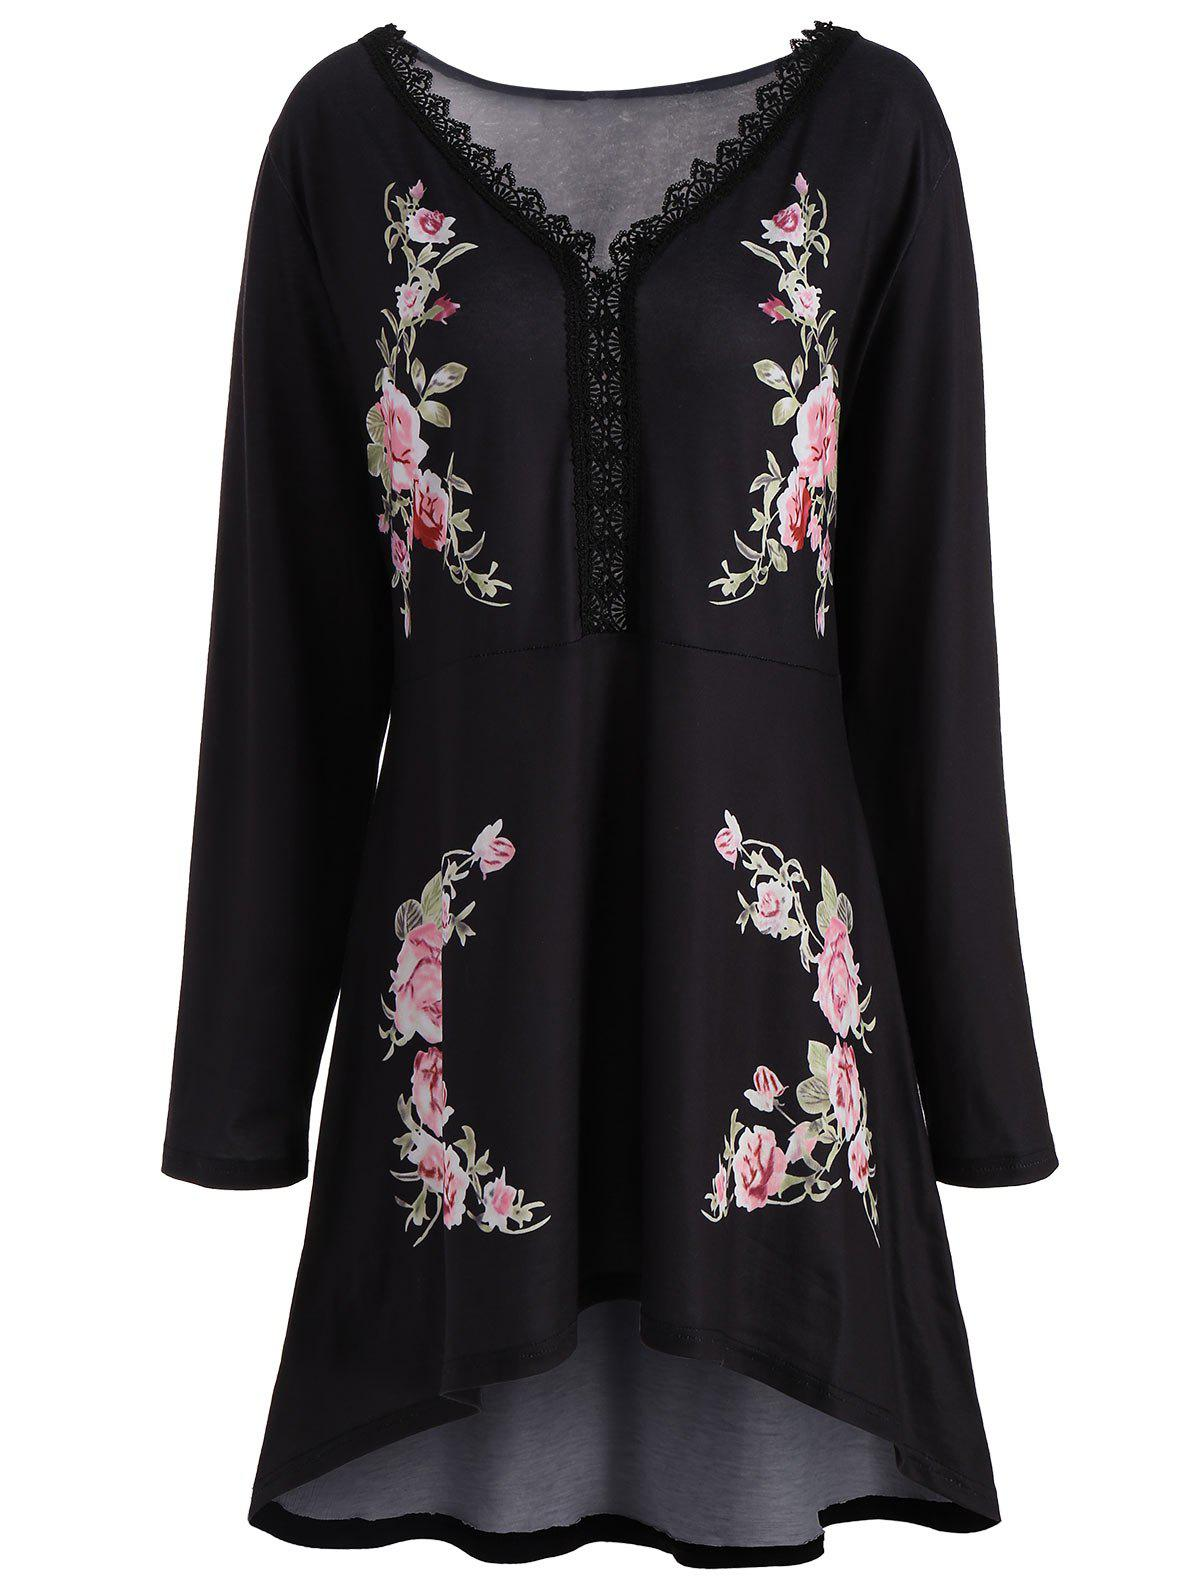 High Low Floral Plus Size V-neck TopWOMEN<br><br>Size: 3XL; Color: BLACK; Material: Polyester; Shirt Length: Long; Sleeve Length: Full; Collar: V-Neck; Style: Fashion; Season: Fall,Spring; Pattern Type: Floral; Weight: 0.4200kg; Package Contents: 1 x Top;